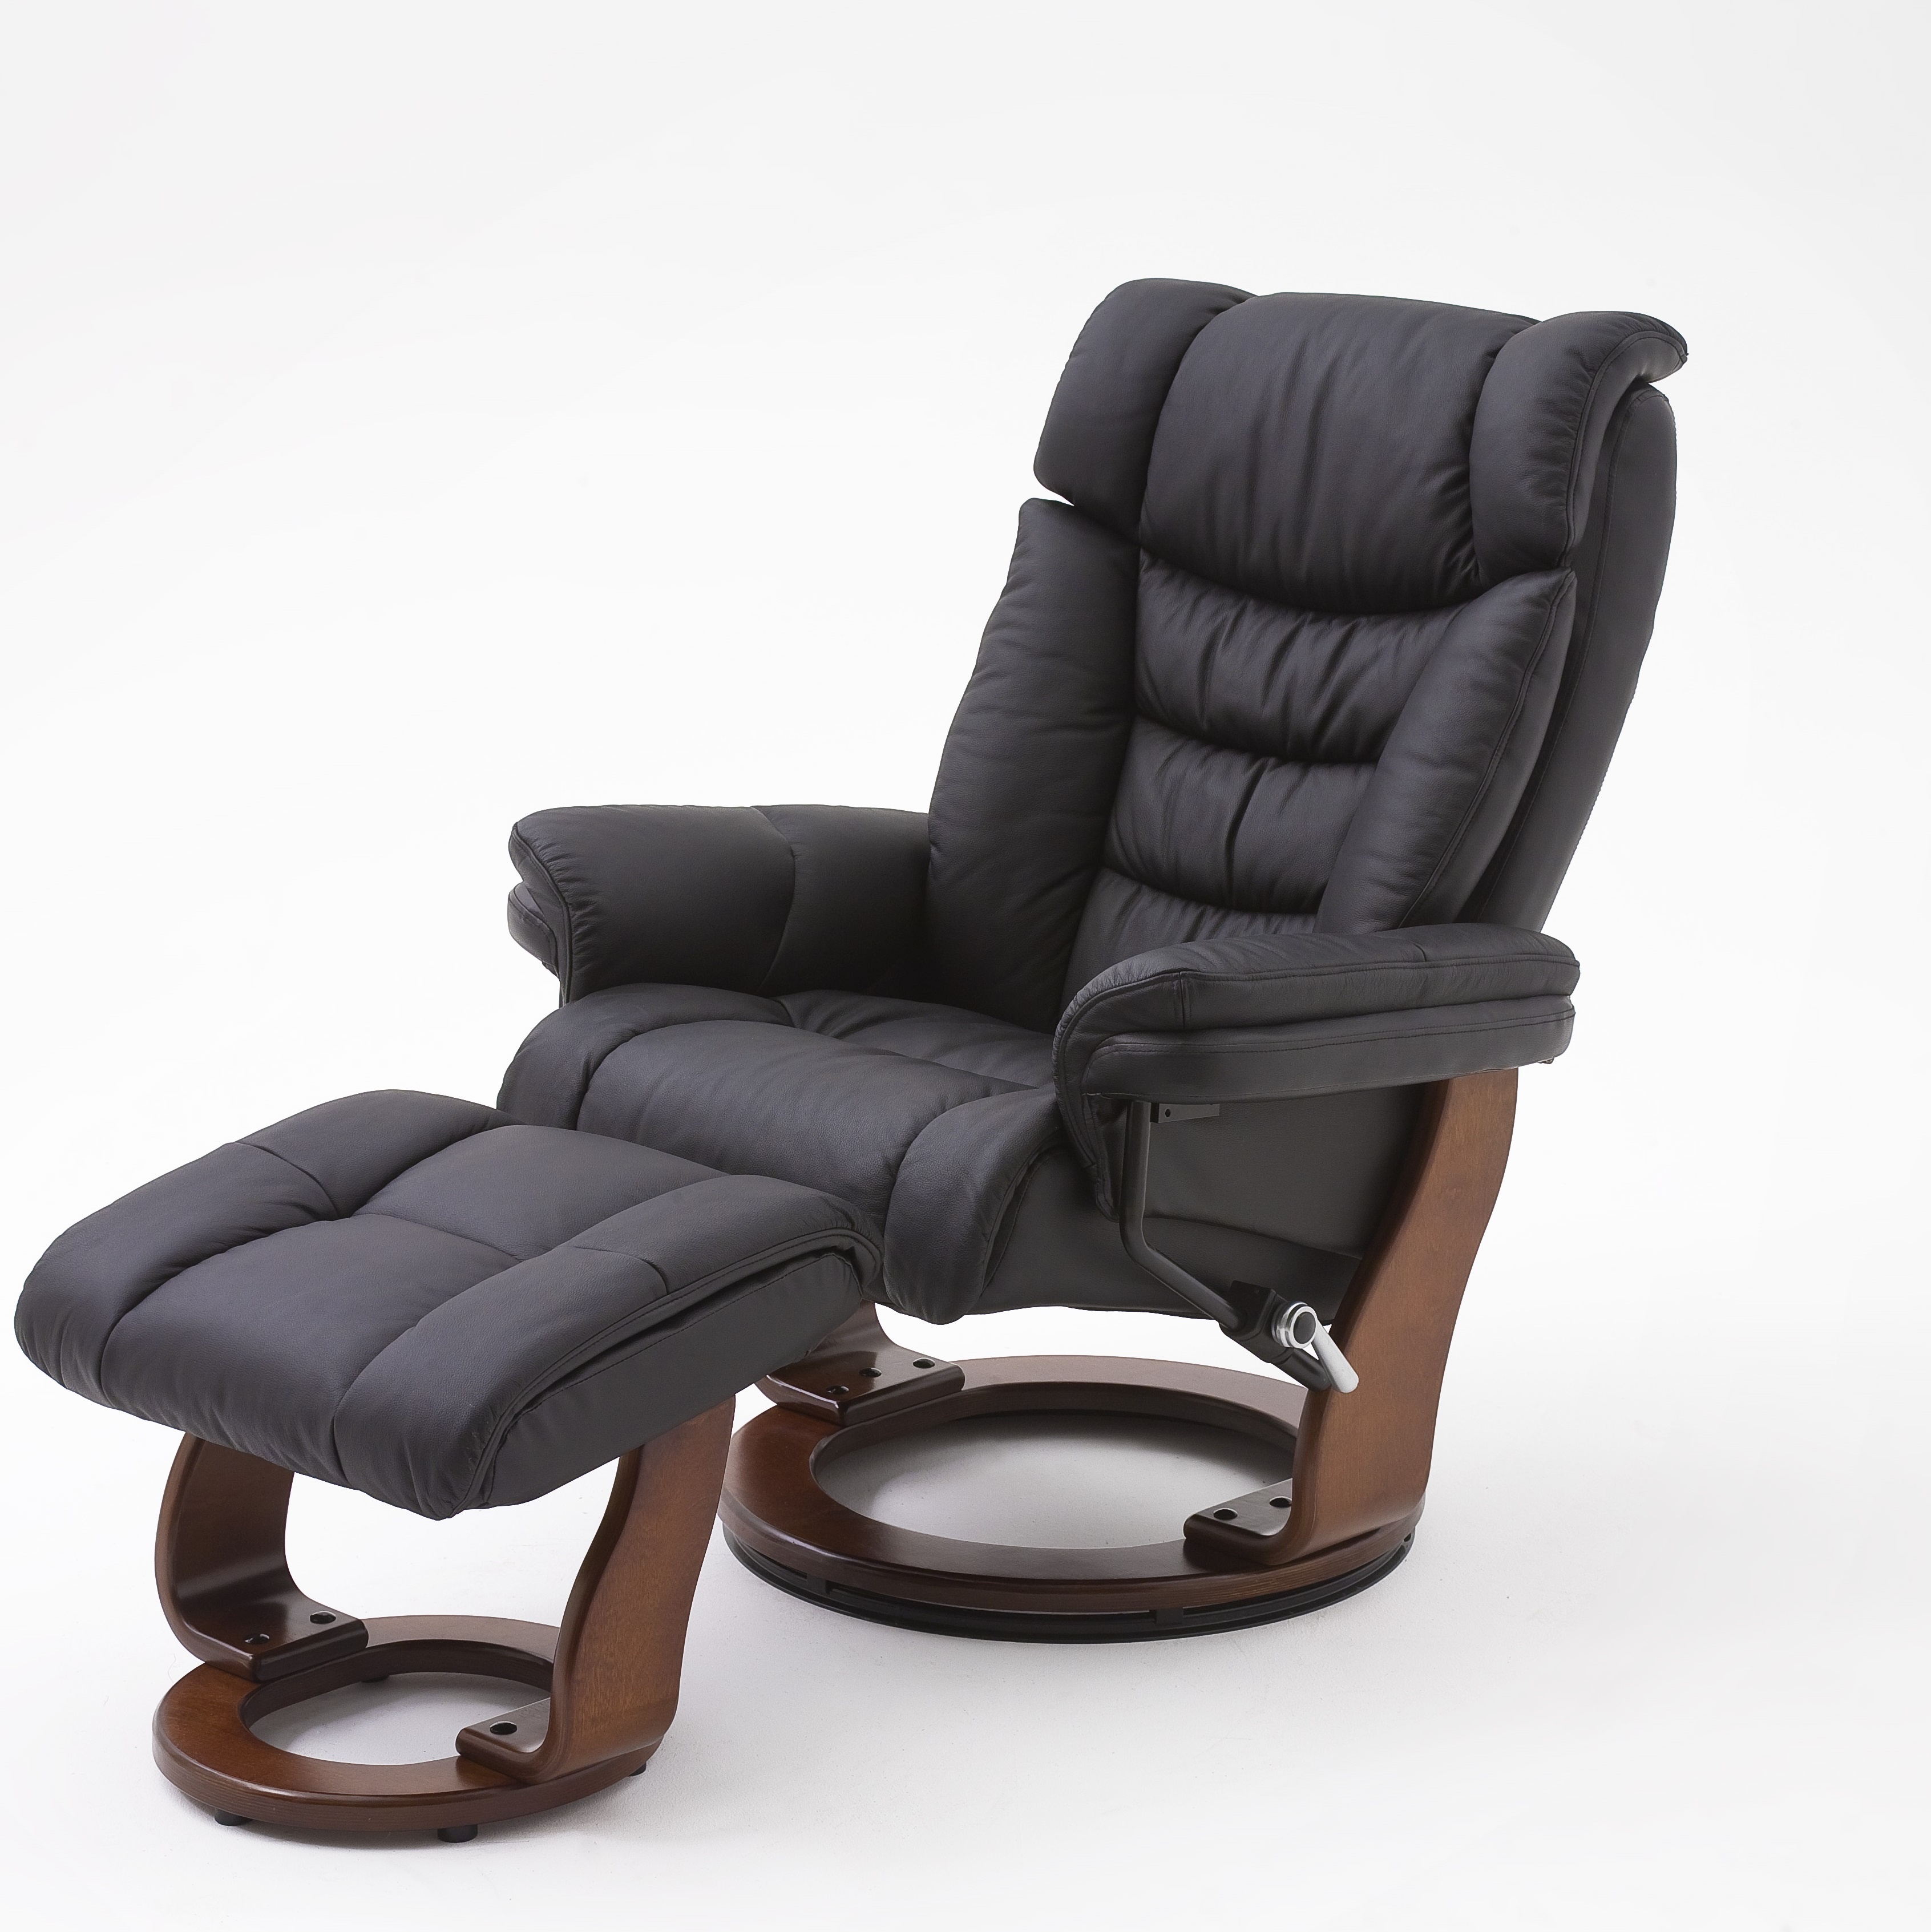 Buy Cheap Leather Swivel Reclining Chair Compare Chairs